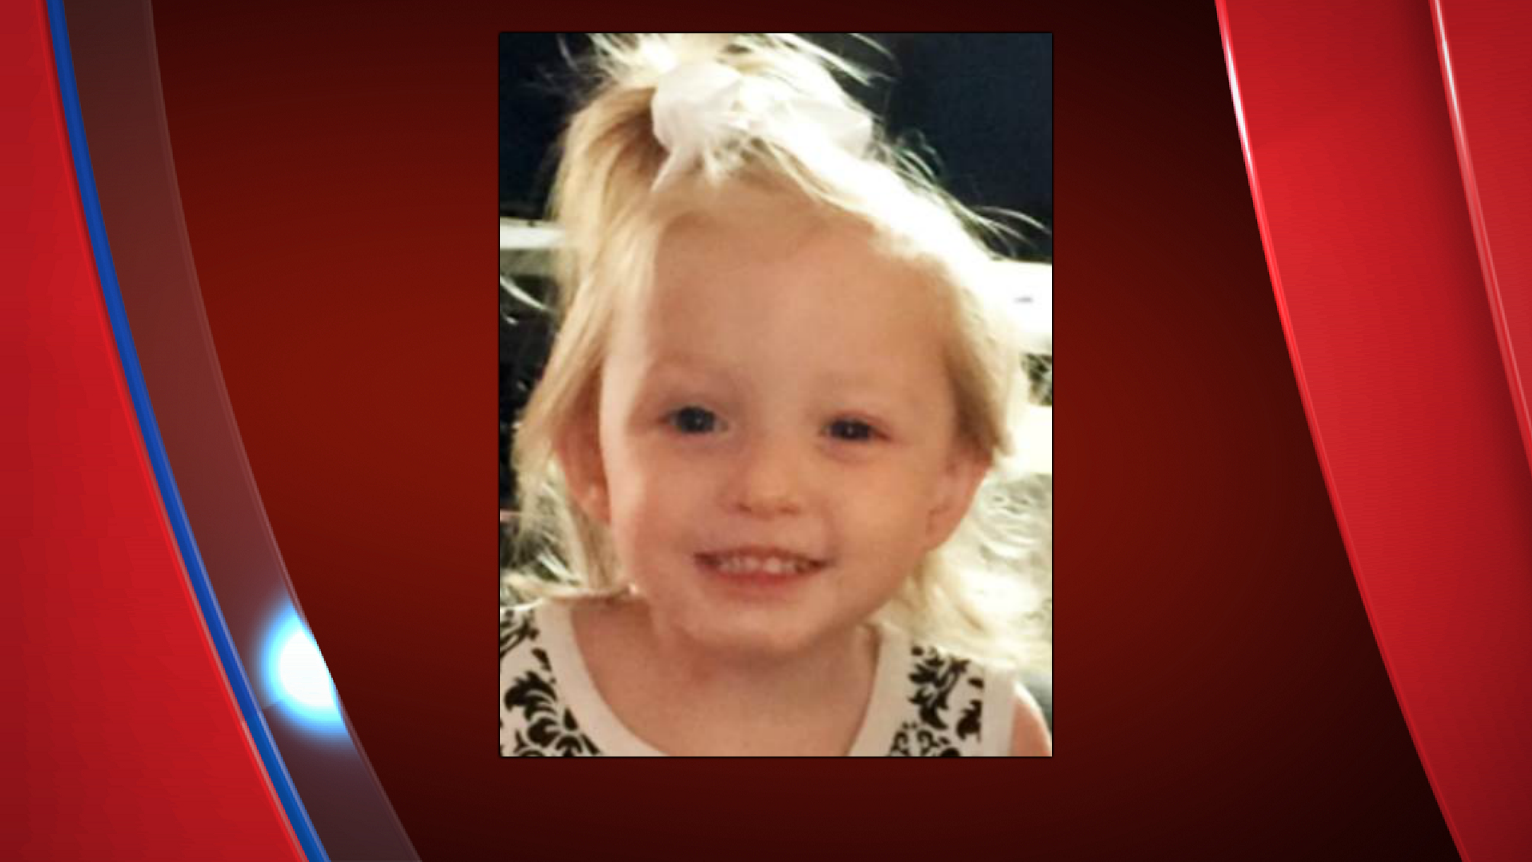 Melaniey Corsaut, 2, was last seen July 3 in Elgin, Oklahoma. (Courtesy of the Chickasha Police Department)